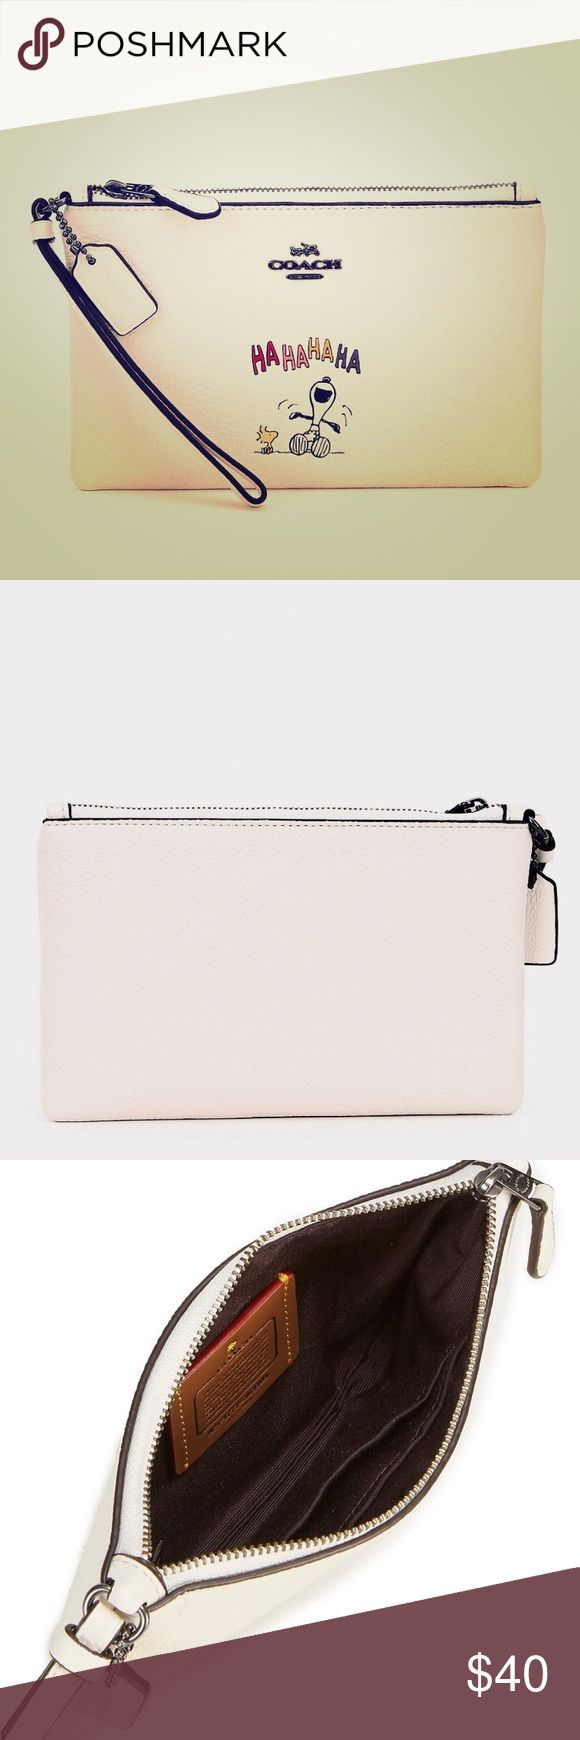 """NWT COACH SNOOPY SMALL WRISTLET Brand new, never used and authentic Coach Snoopy wristlet in white/chalk pebble leather.  Contains: Two credit card slots Zip-top closure, fabric lining Wrist strap attached 7.5""""W x .5""""D x 4.75""""H Fits an iPhone or Android ***WILL SHIP WITHIN 24 HOURS OF PURCHASE*** ***Please no low-ball offers or requests to hold item, thanks!*** Coach Bags Clutches & Wristlets"""